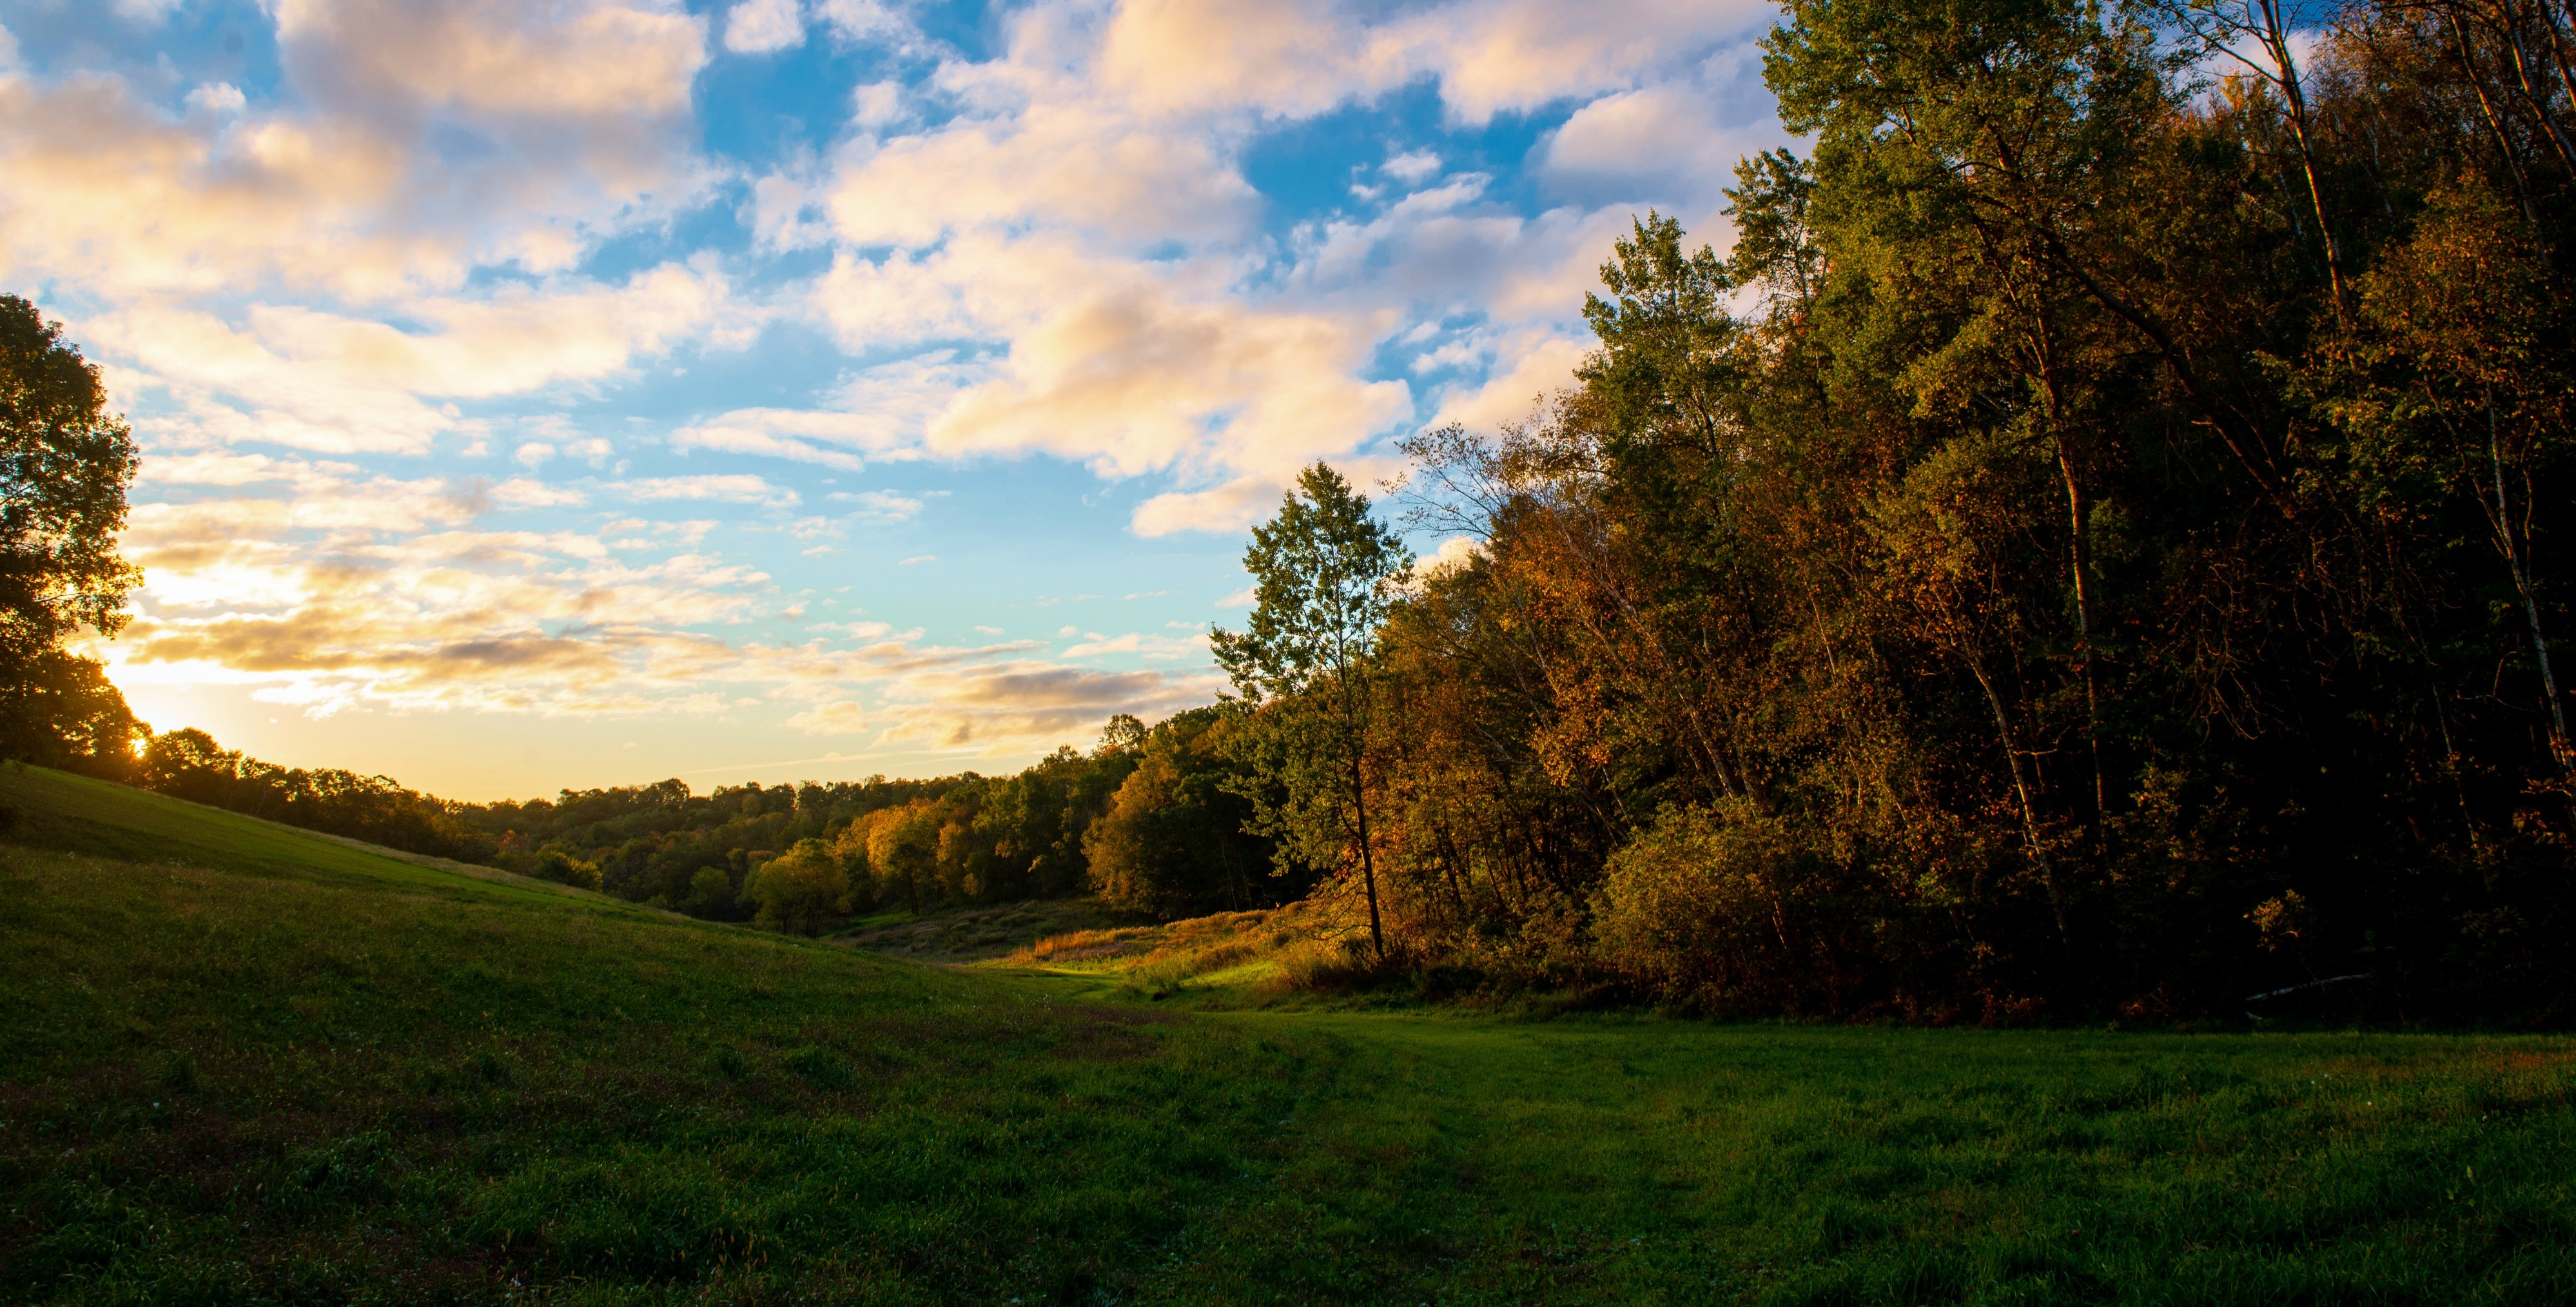 Valley during Fall Season Photo by Jason Ray